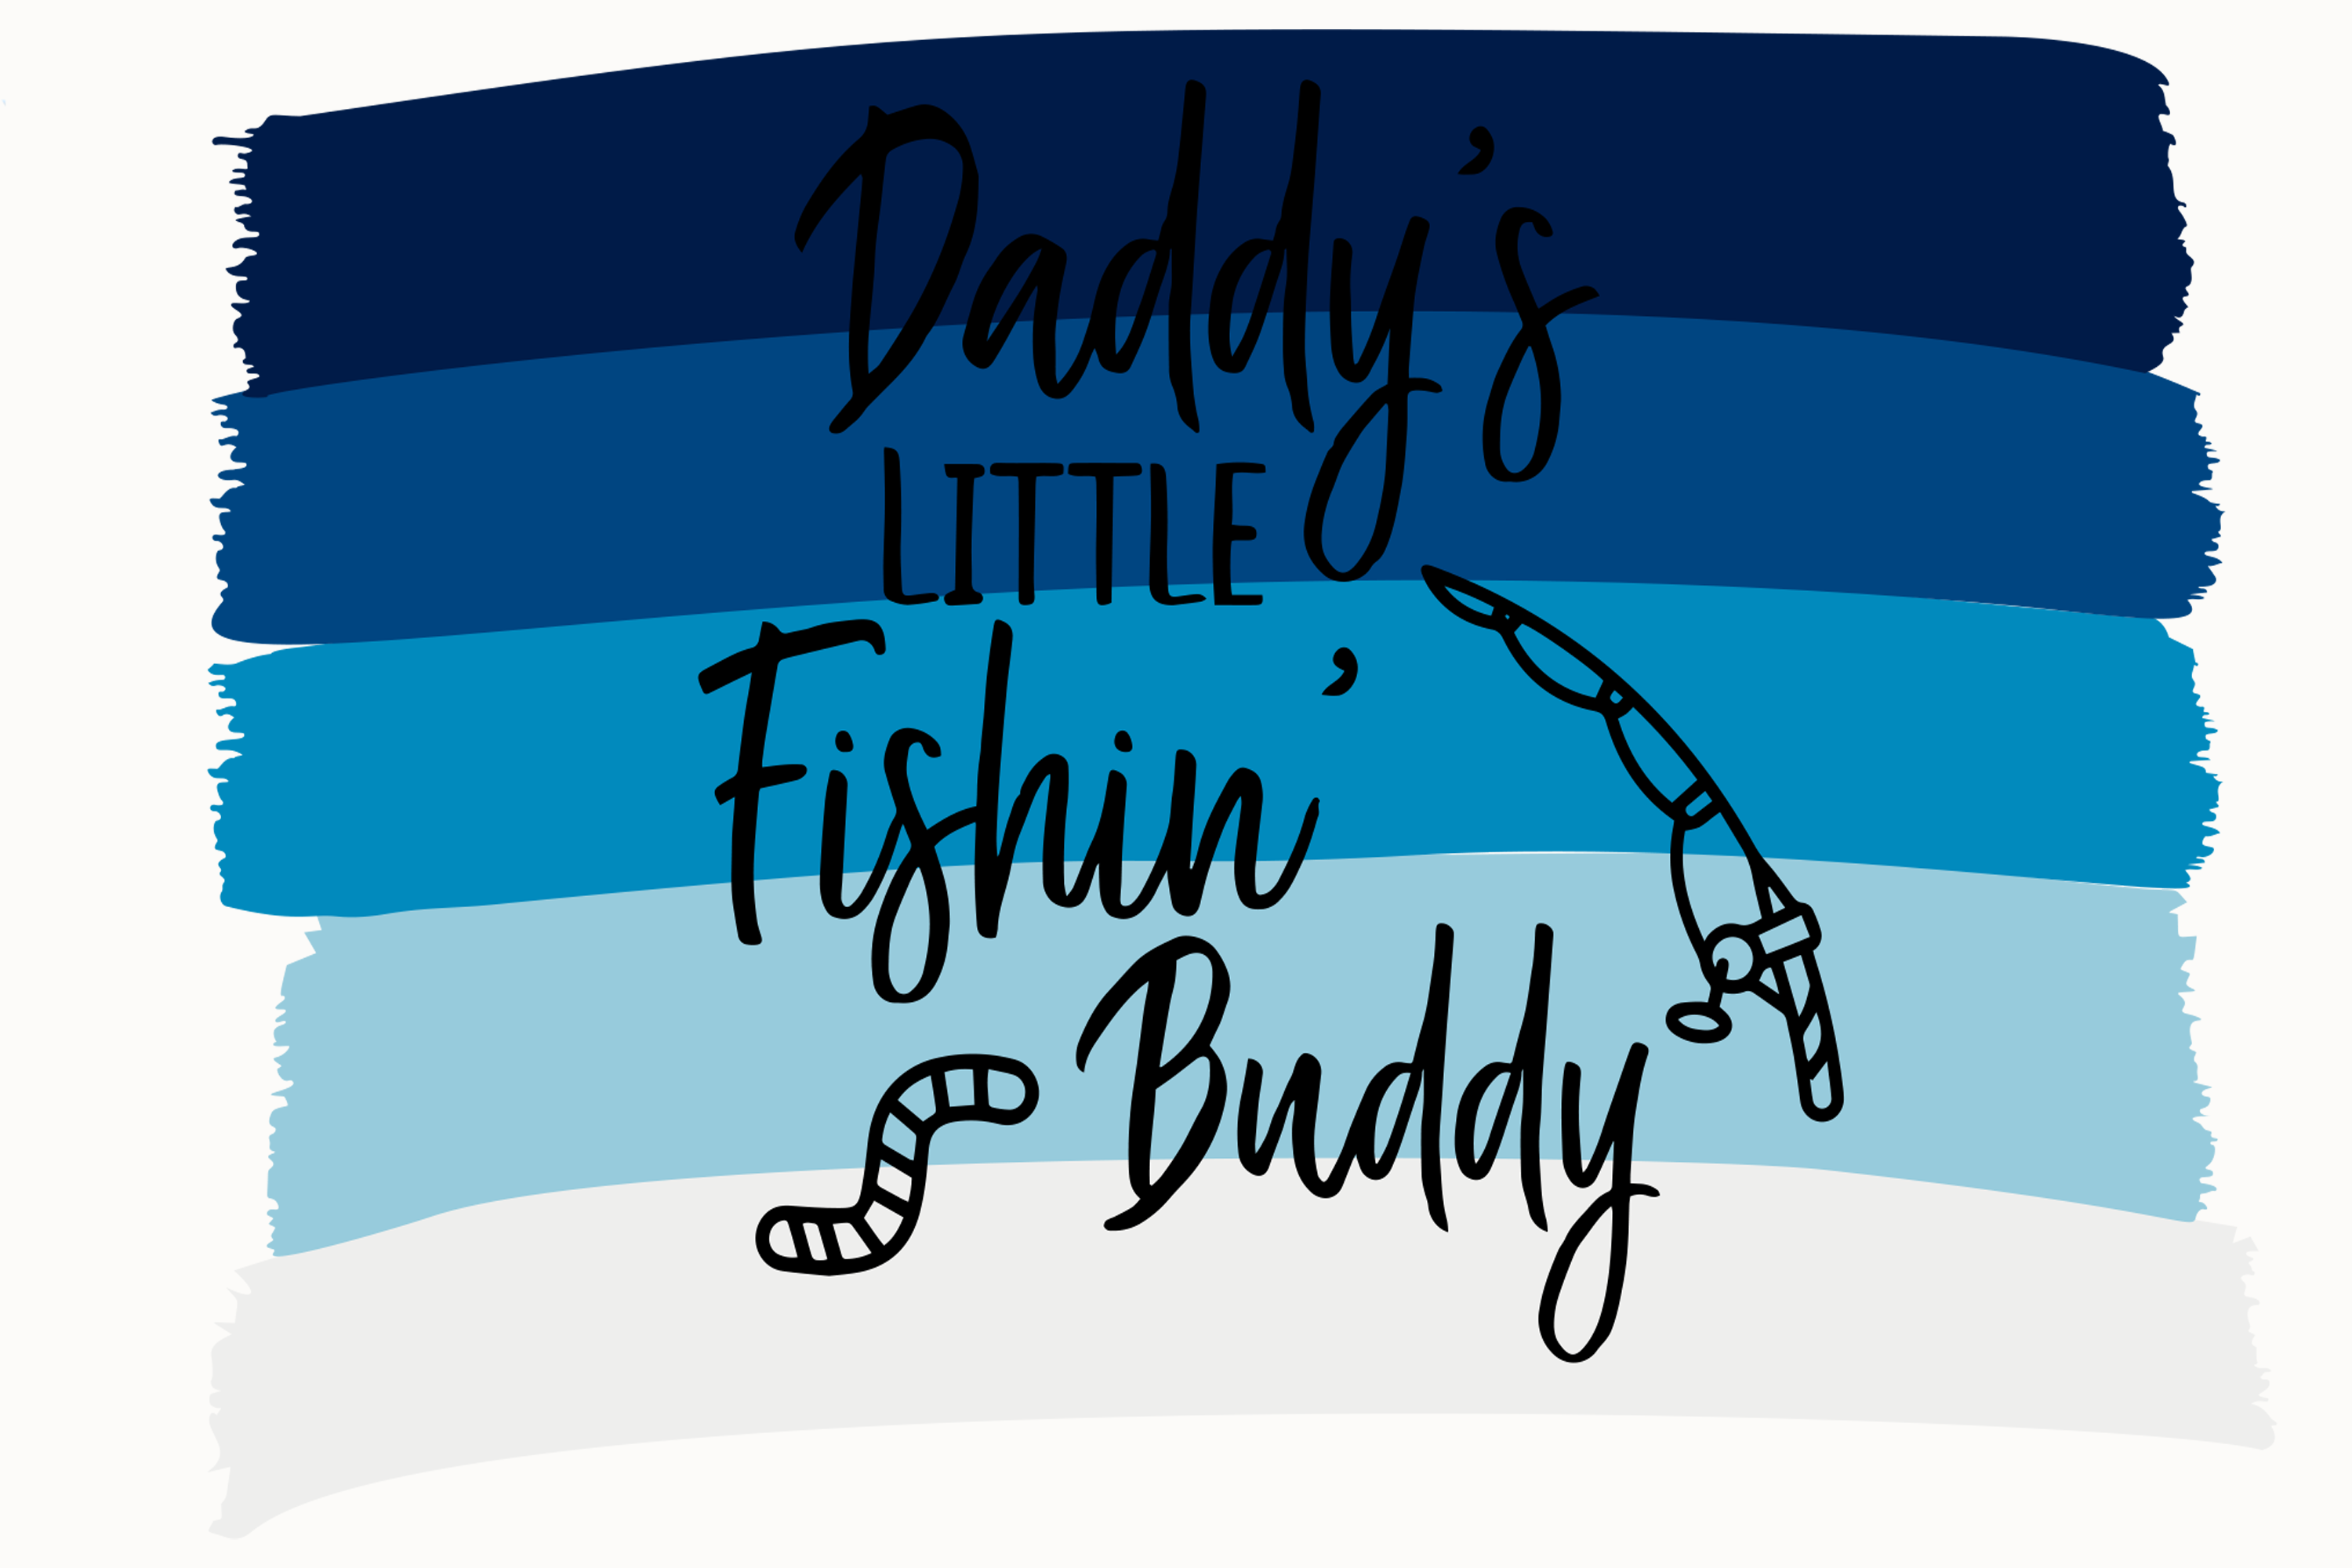 Download Free Daddy S Little Fishin Buddy Graphic By Am Digital Designs for Cricut Explore, Silhouette and other cutting machines.